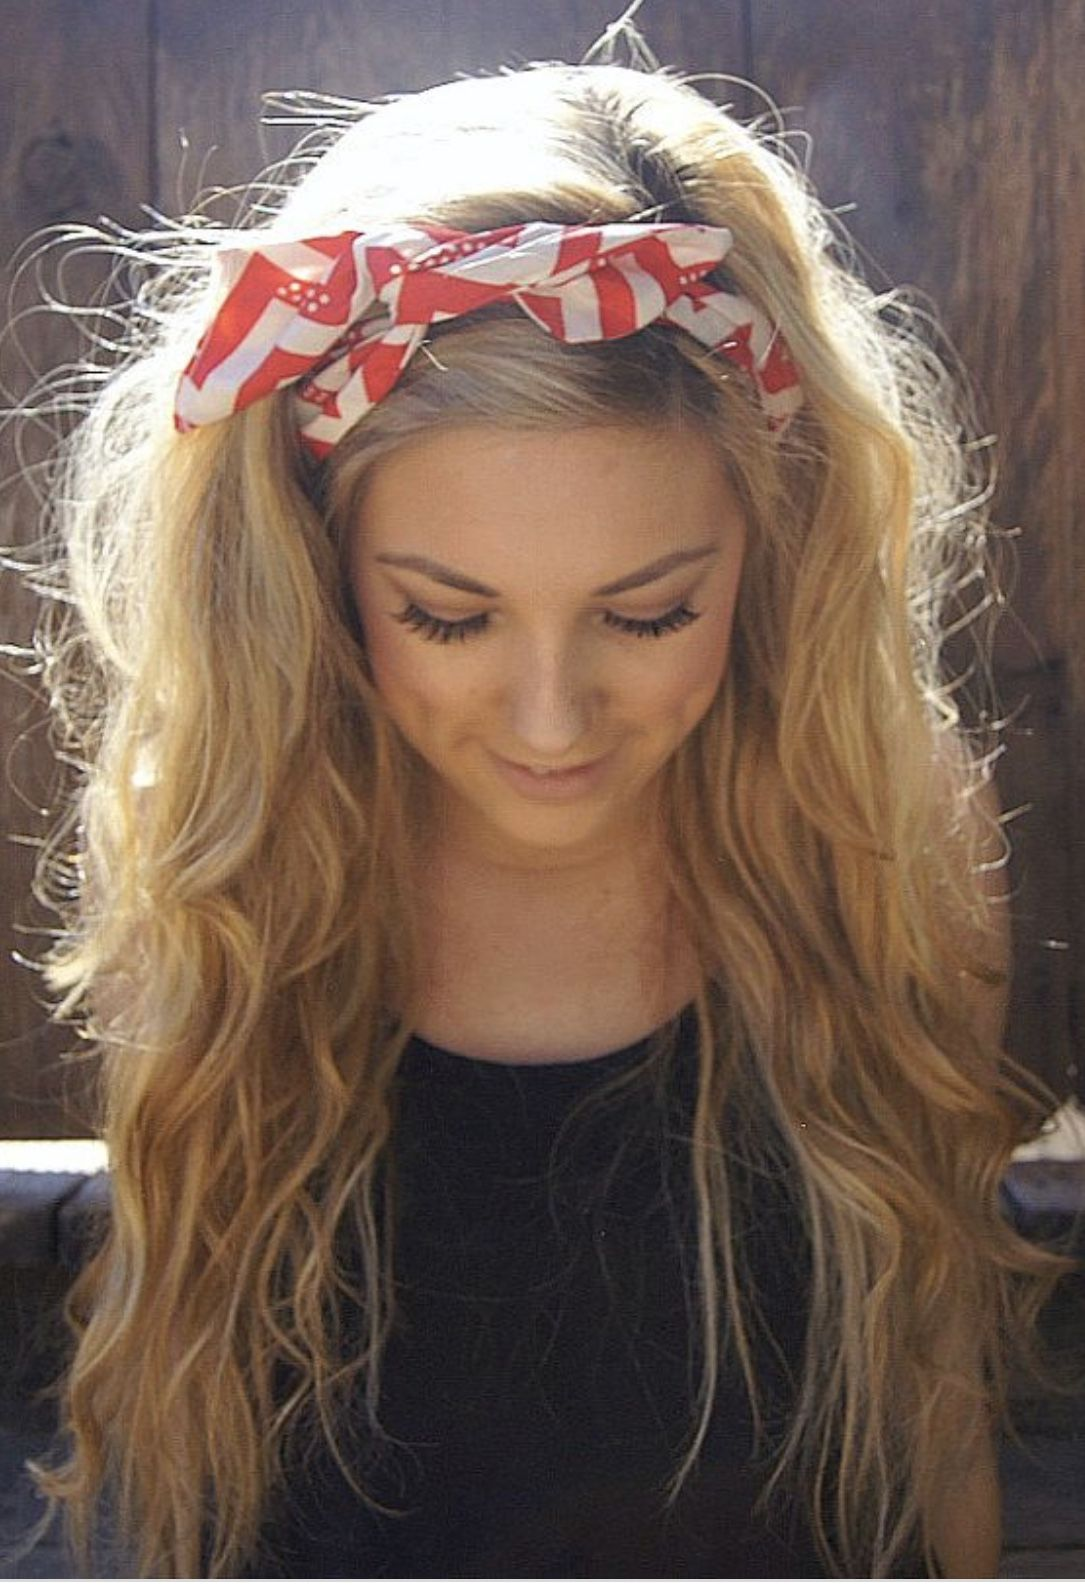 Long Wavy Hair With Headband Headband Hairstyles Long Hair Styles Hair Lengths